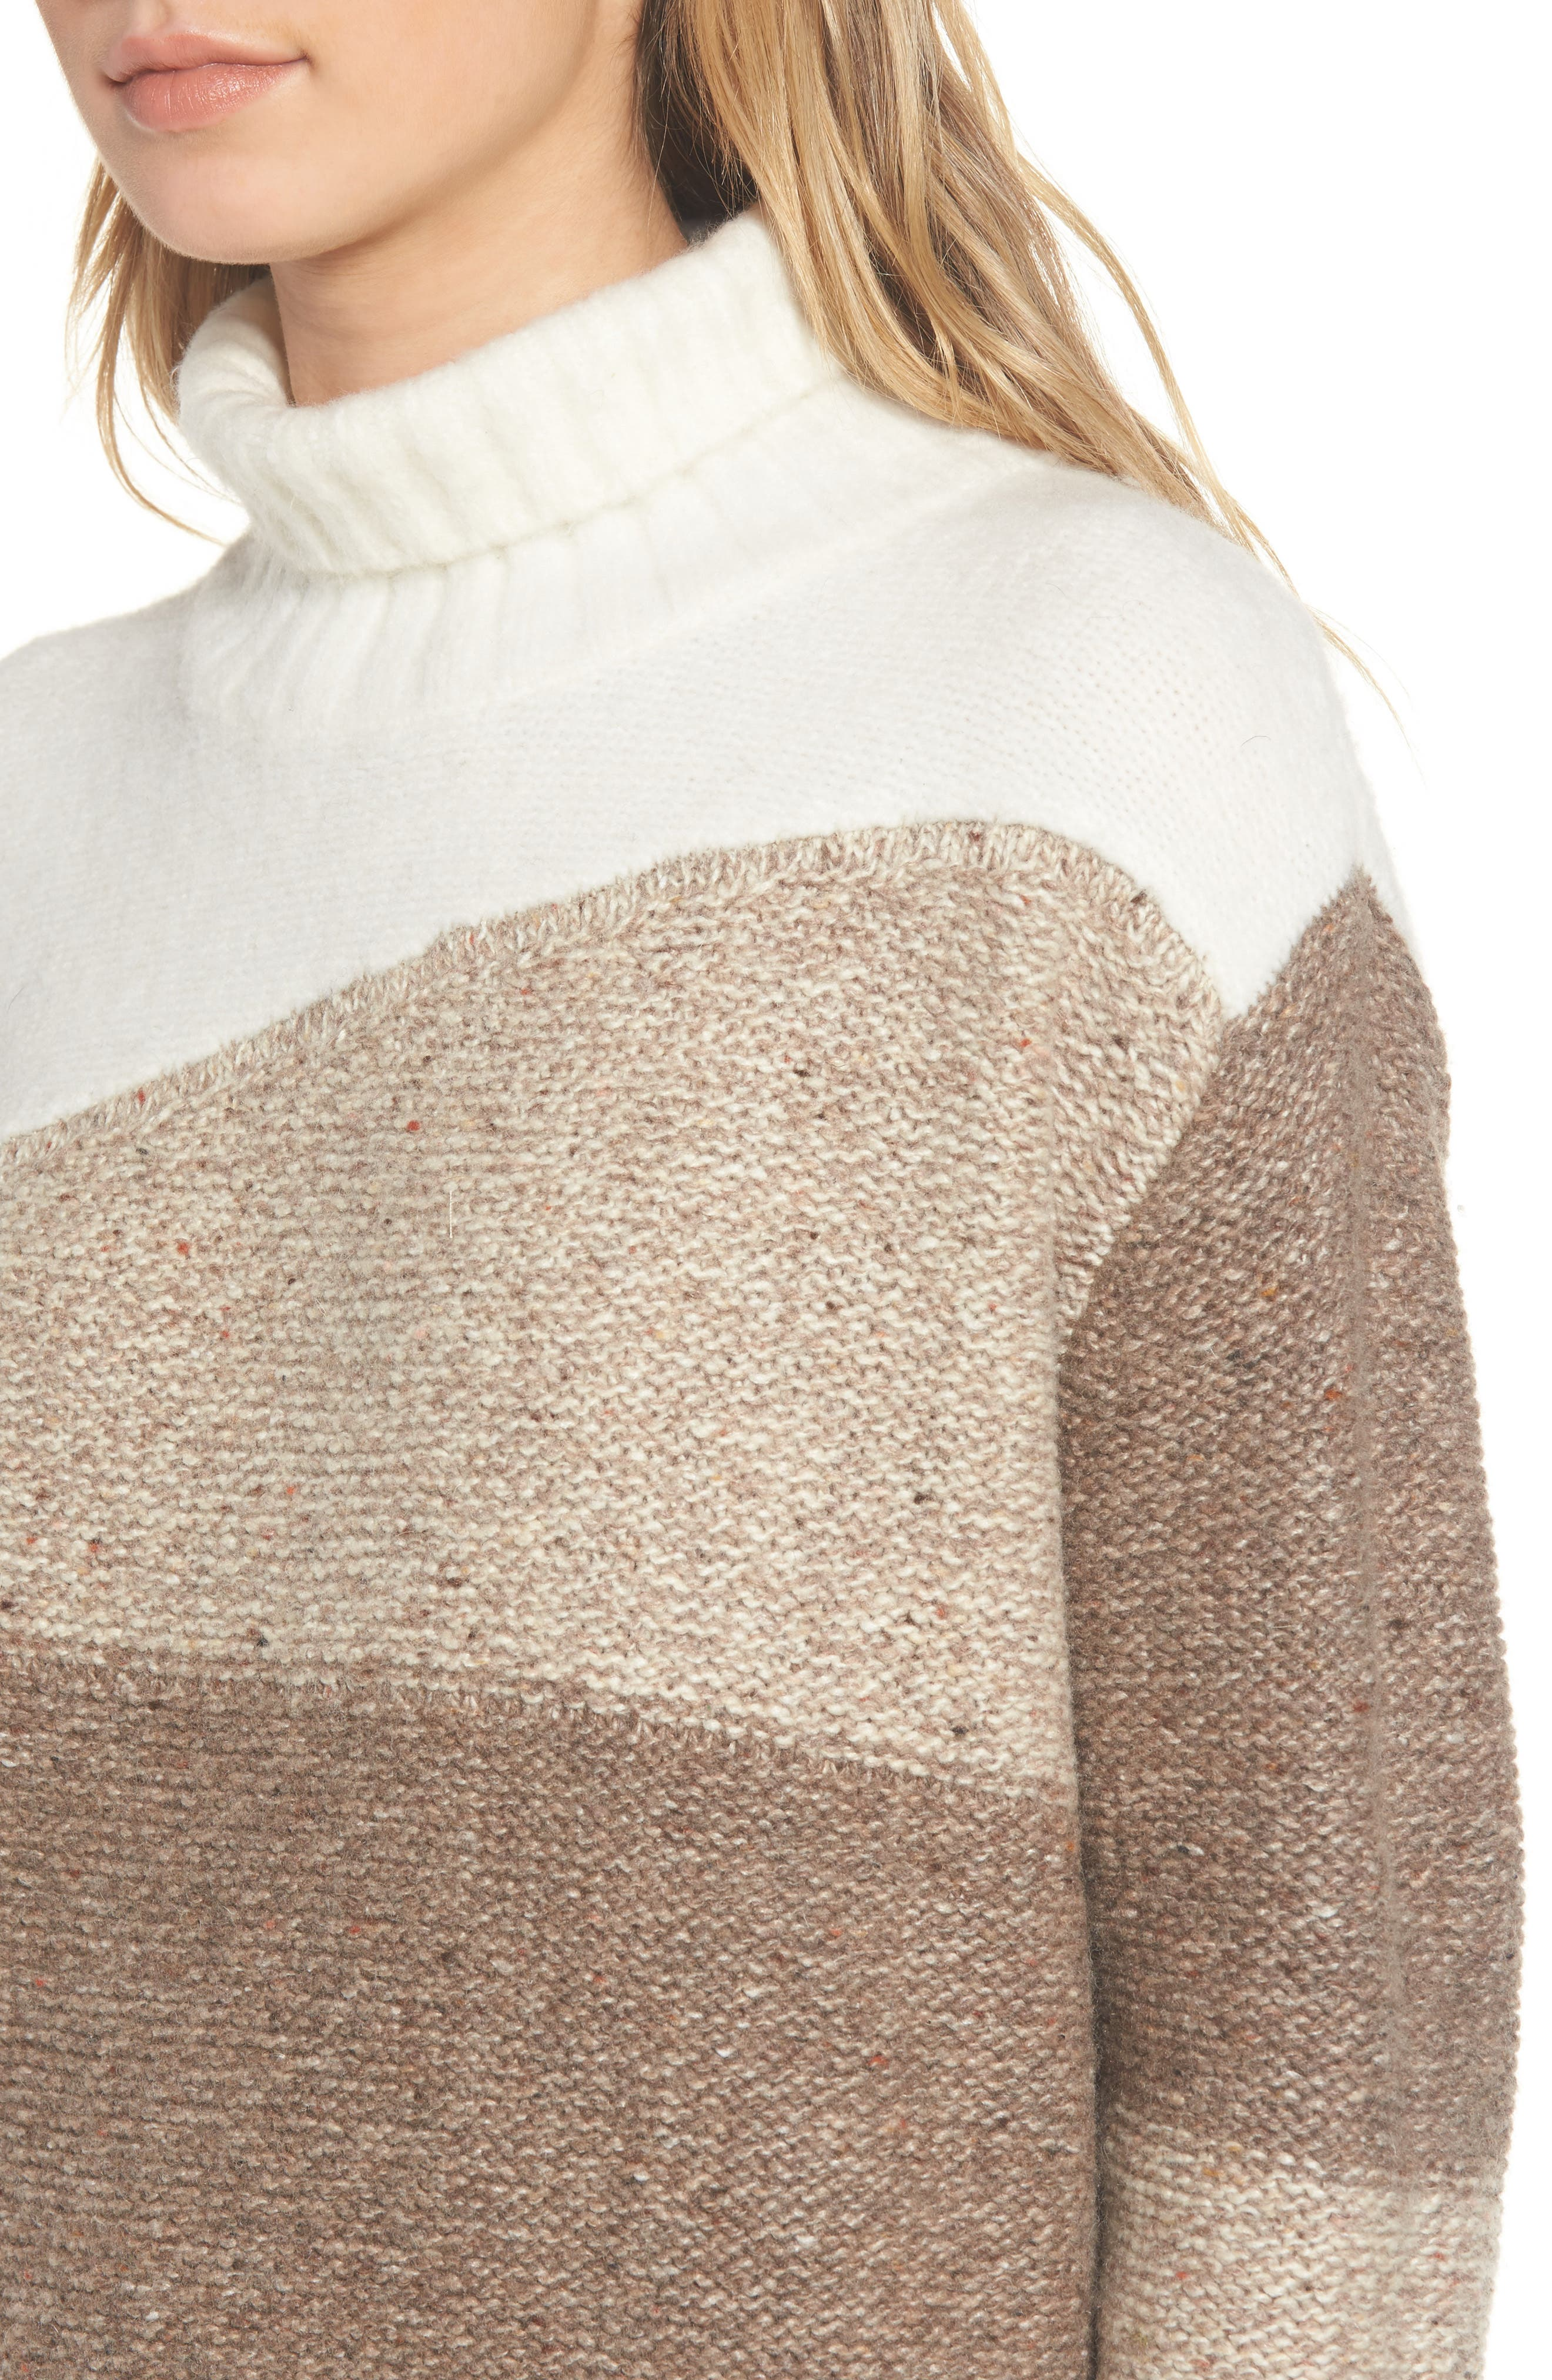 Anna Patchwork Turtleneck,                             Alternate thumbnail 4, color,                             Winter White